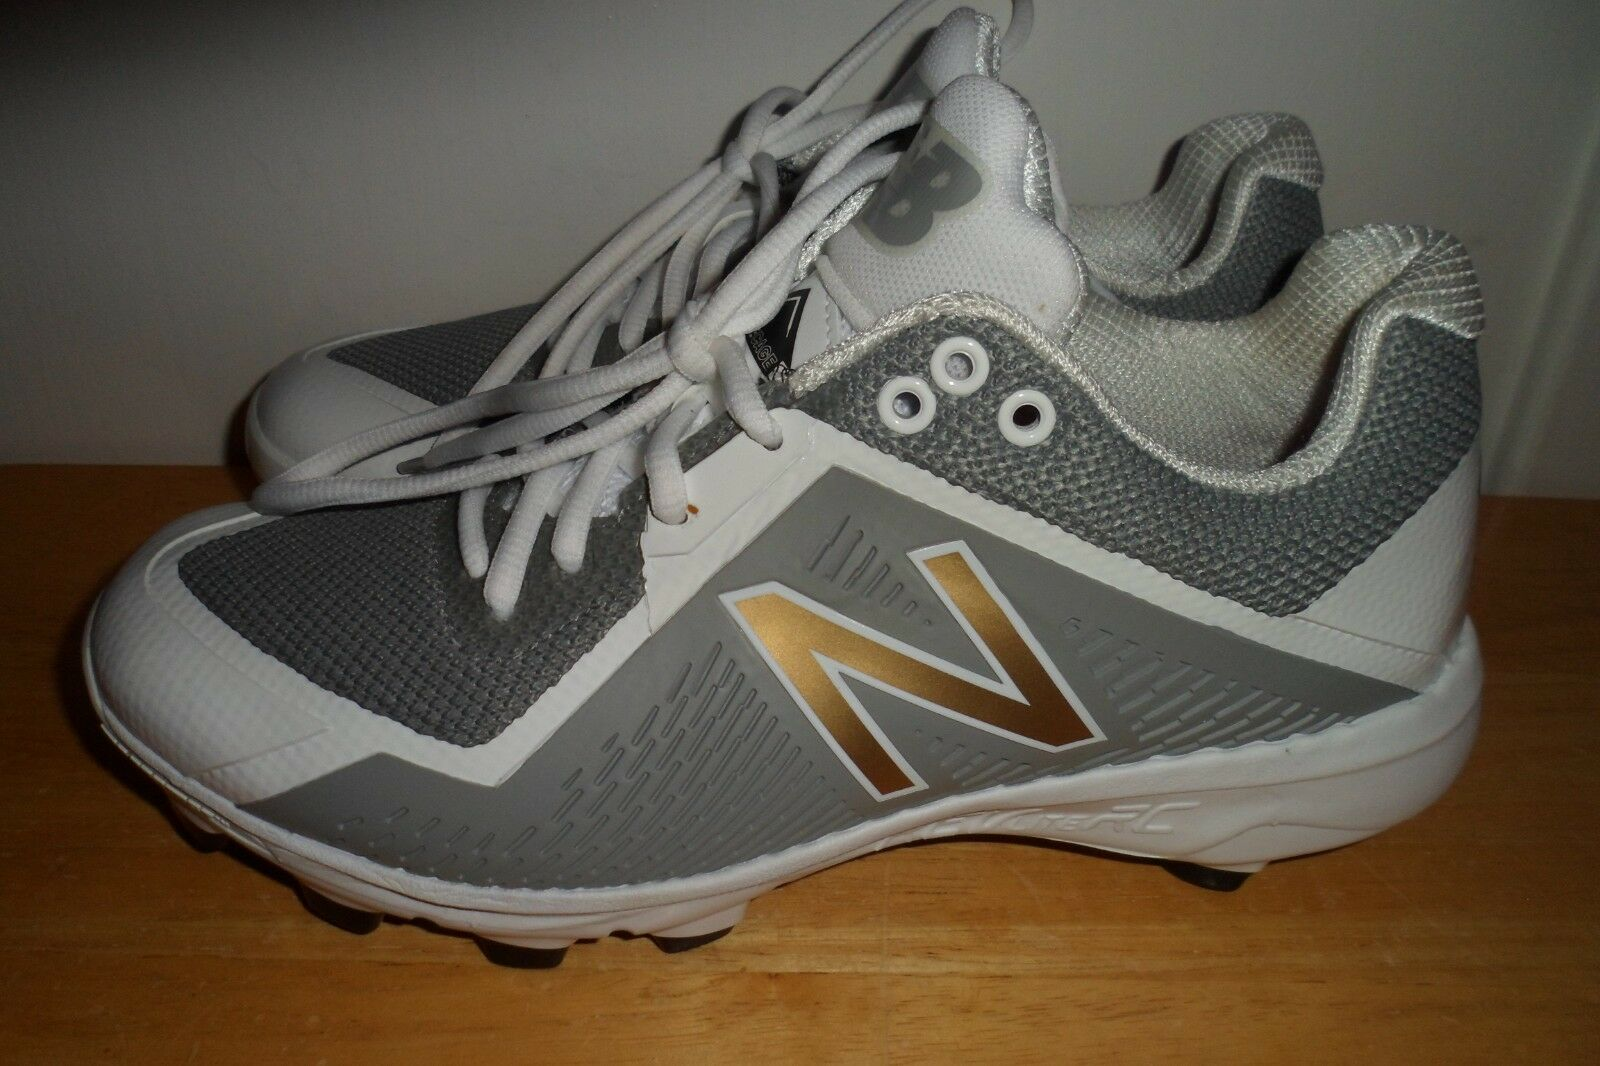 MUST SEE MADE IN USA NWOT 139.99 NEW BALANCE LP4040M4 4040V4 ON HEELS 8 D  nyvjbe1363-Men 1b1725b2308